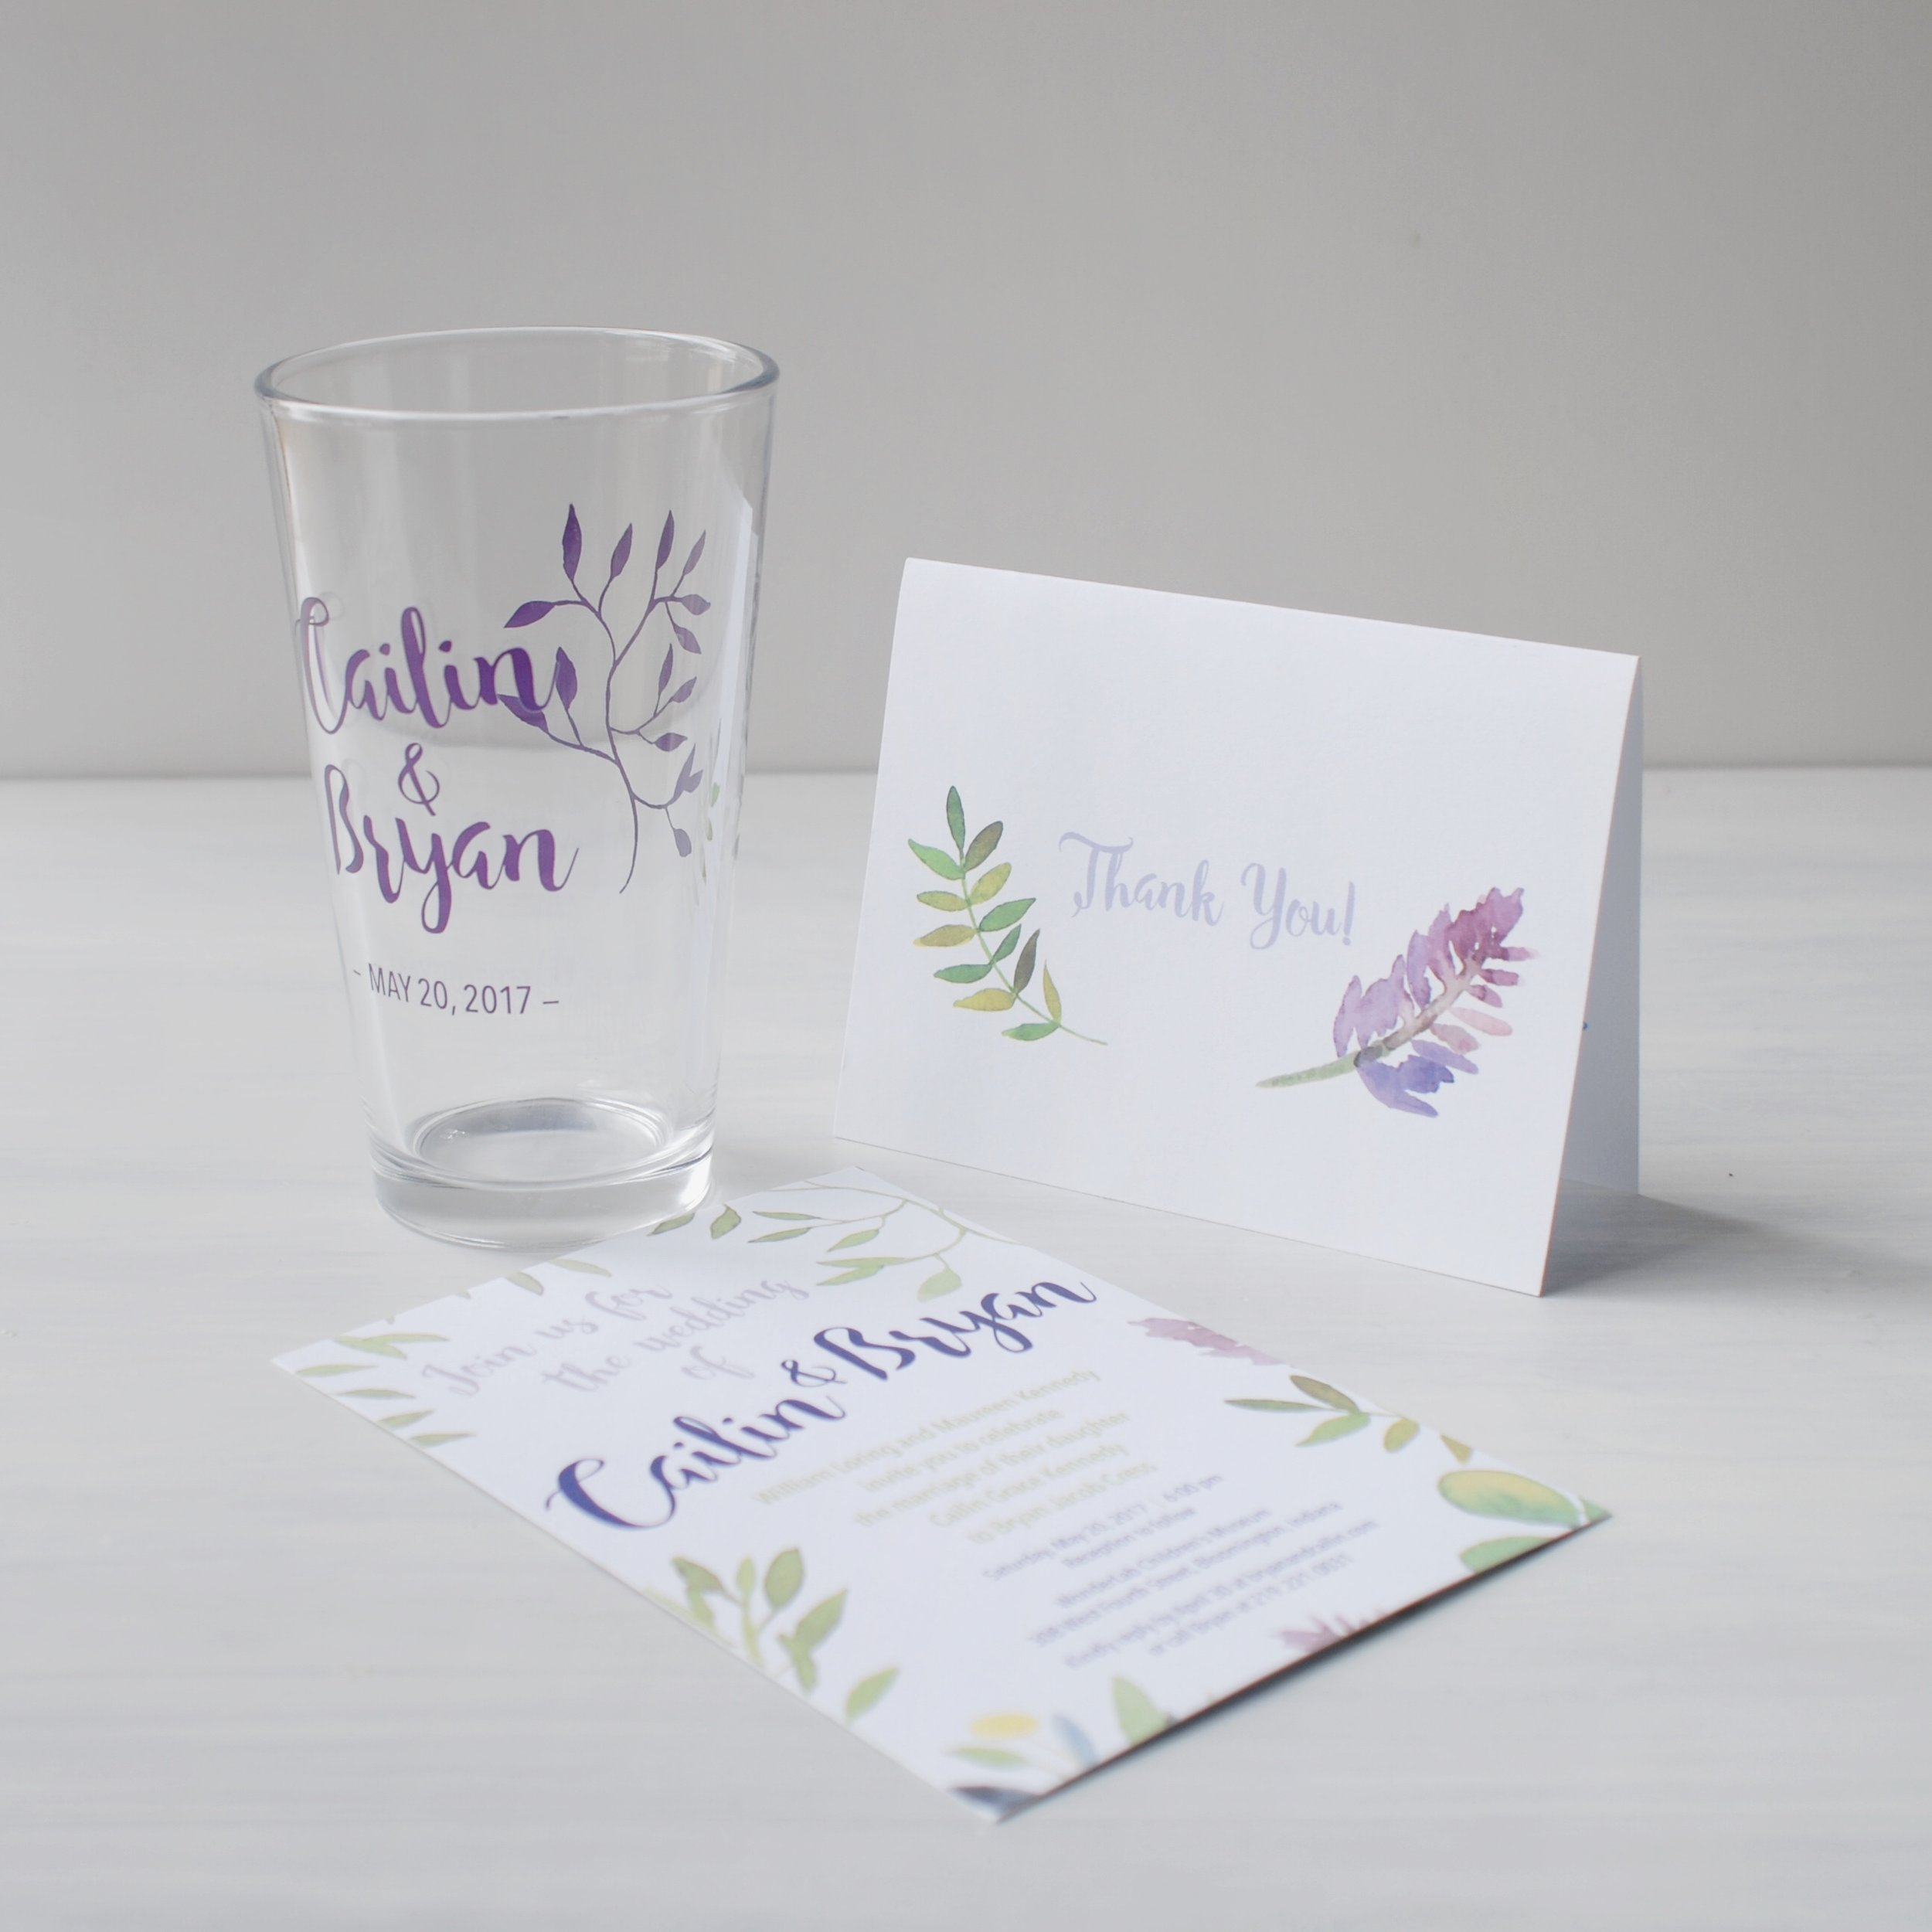 For an informal wedding on a budget, we had the most important pieces commercially printed, and produced others on the bride's home printer.